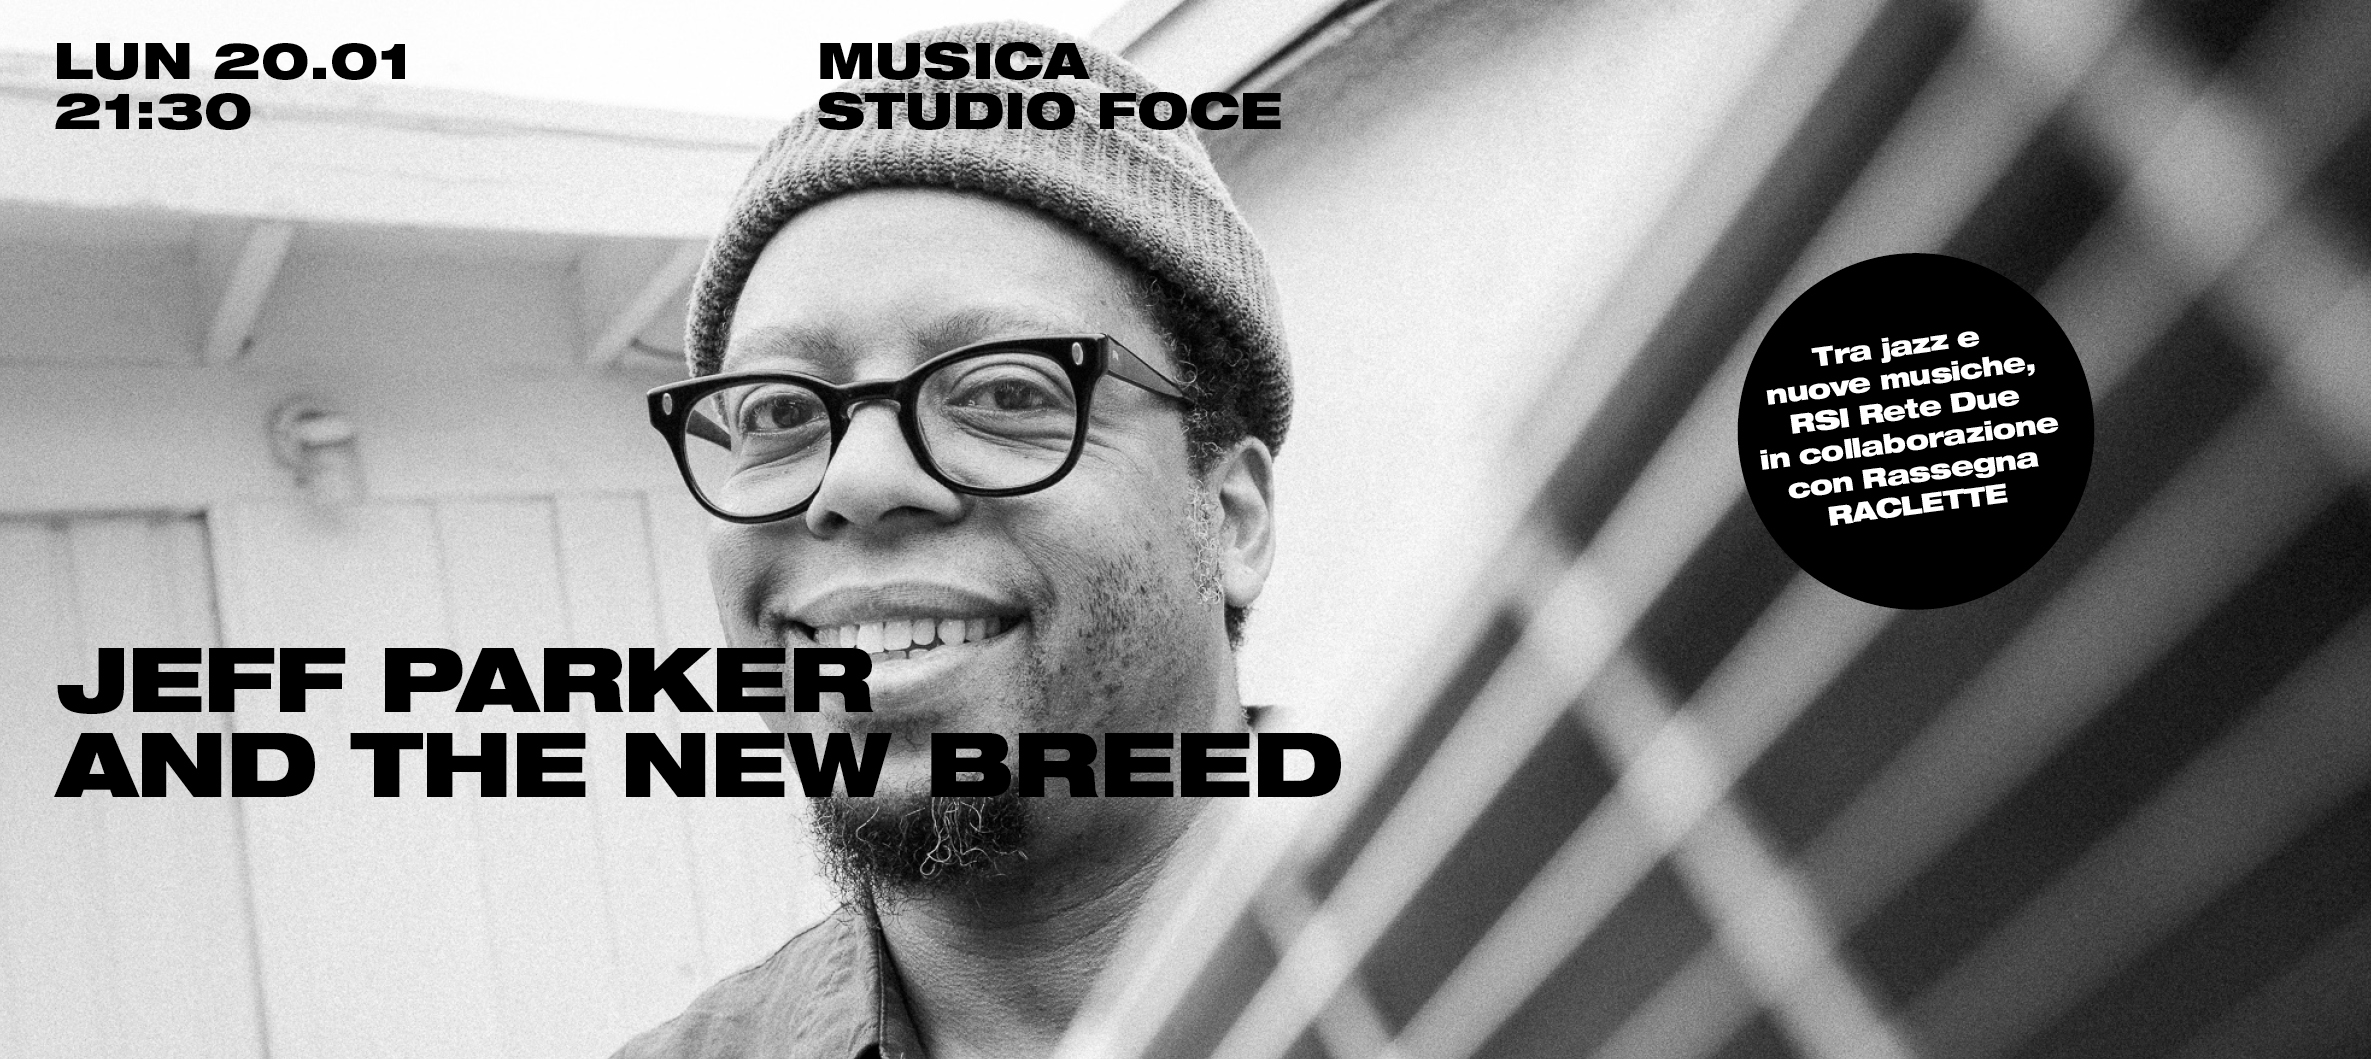 Raclette - Tra Jazz e nuove musiche - JEFF PARKER AND THE NEW BREED